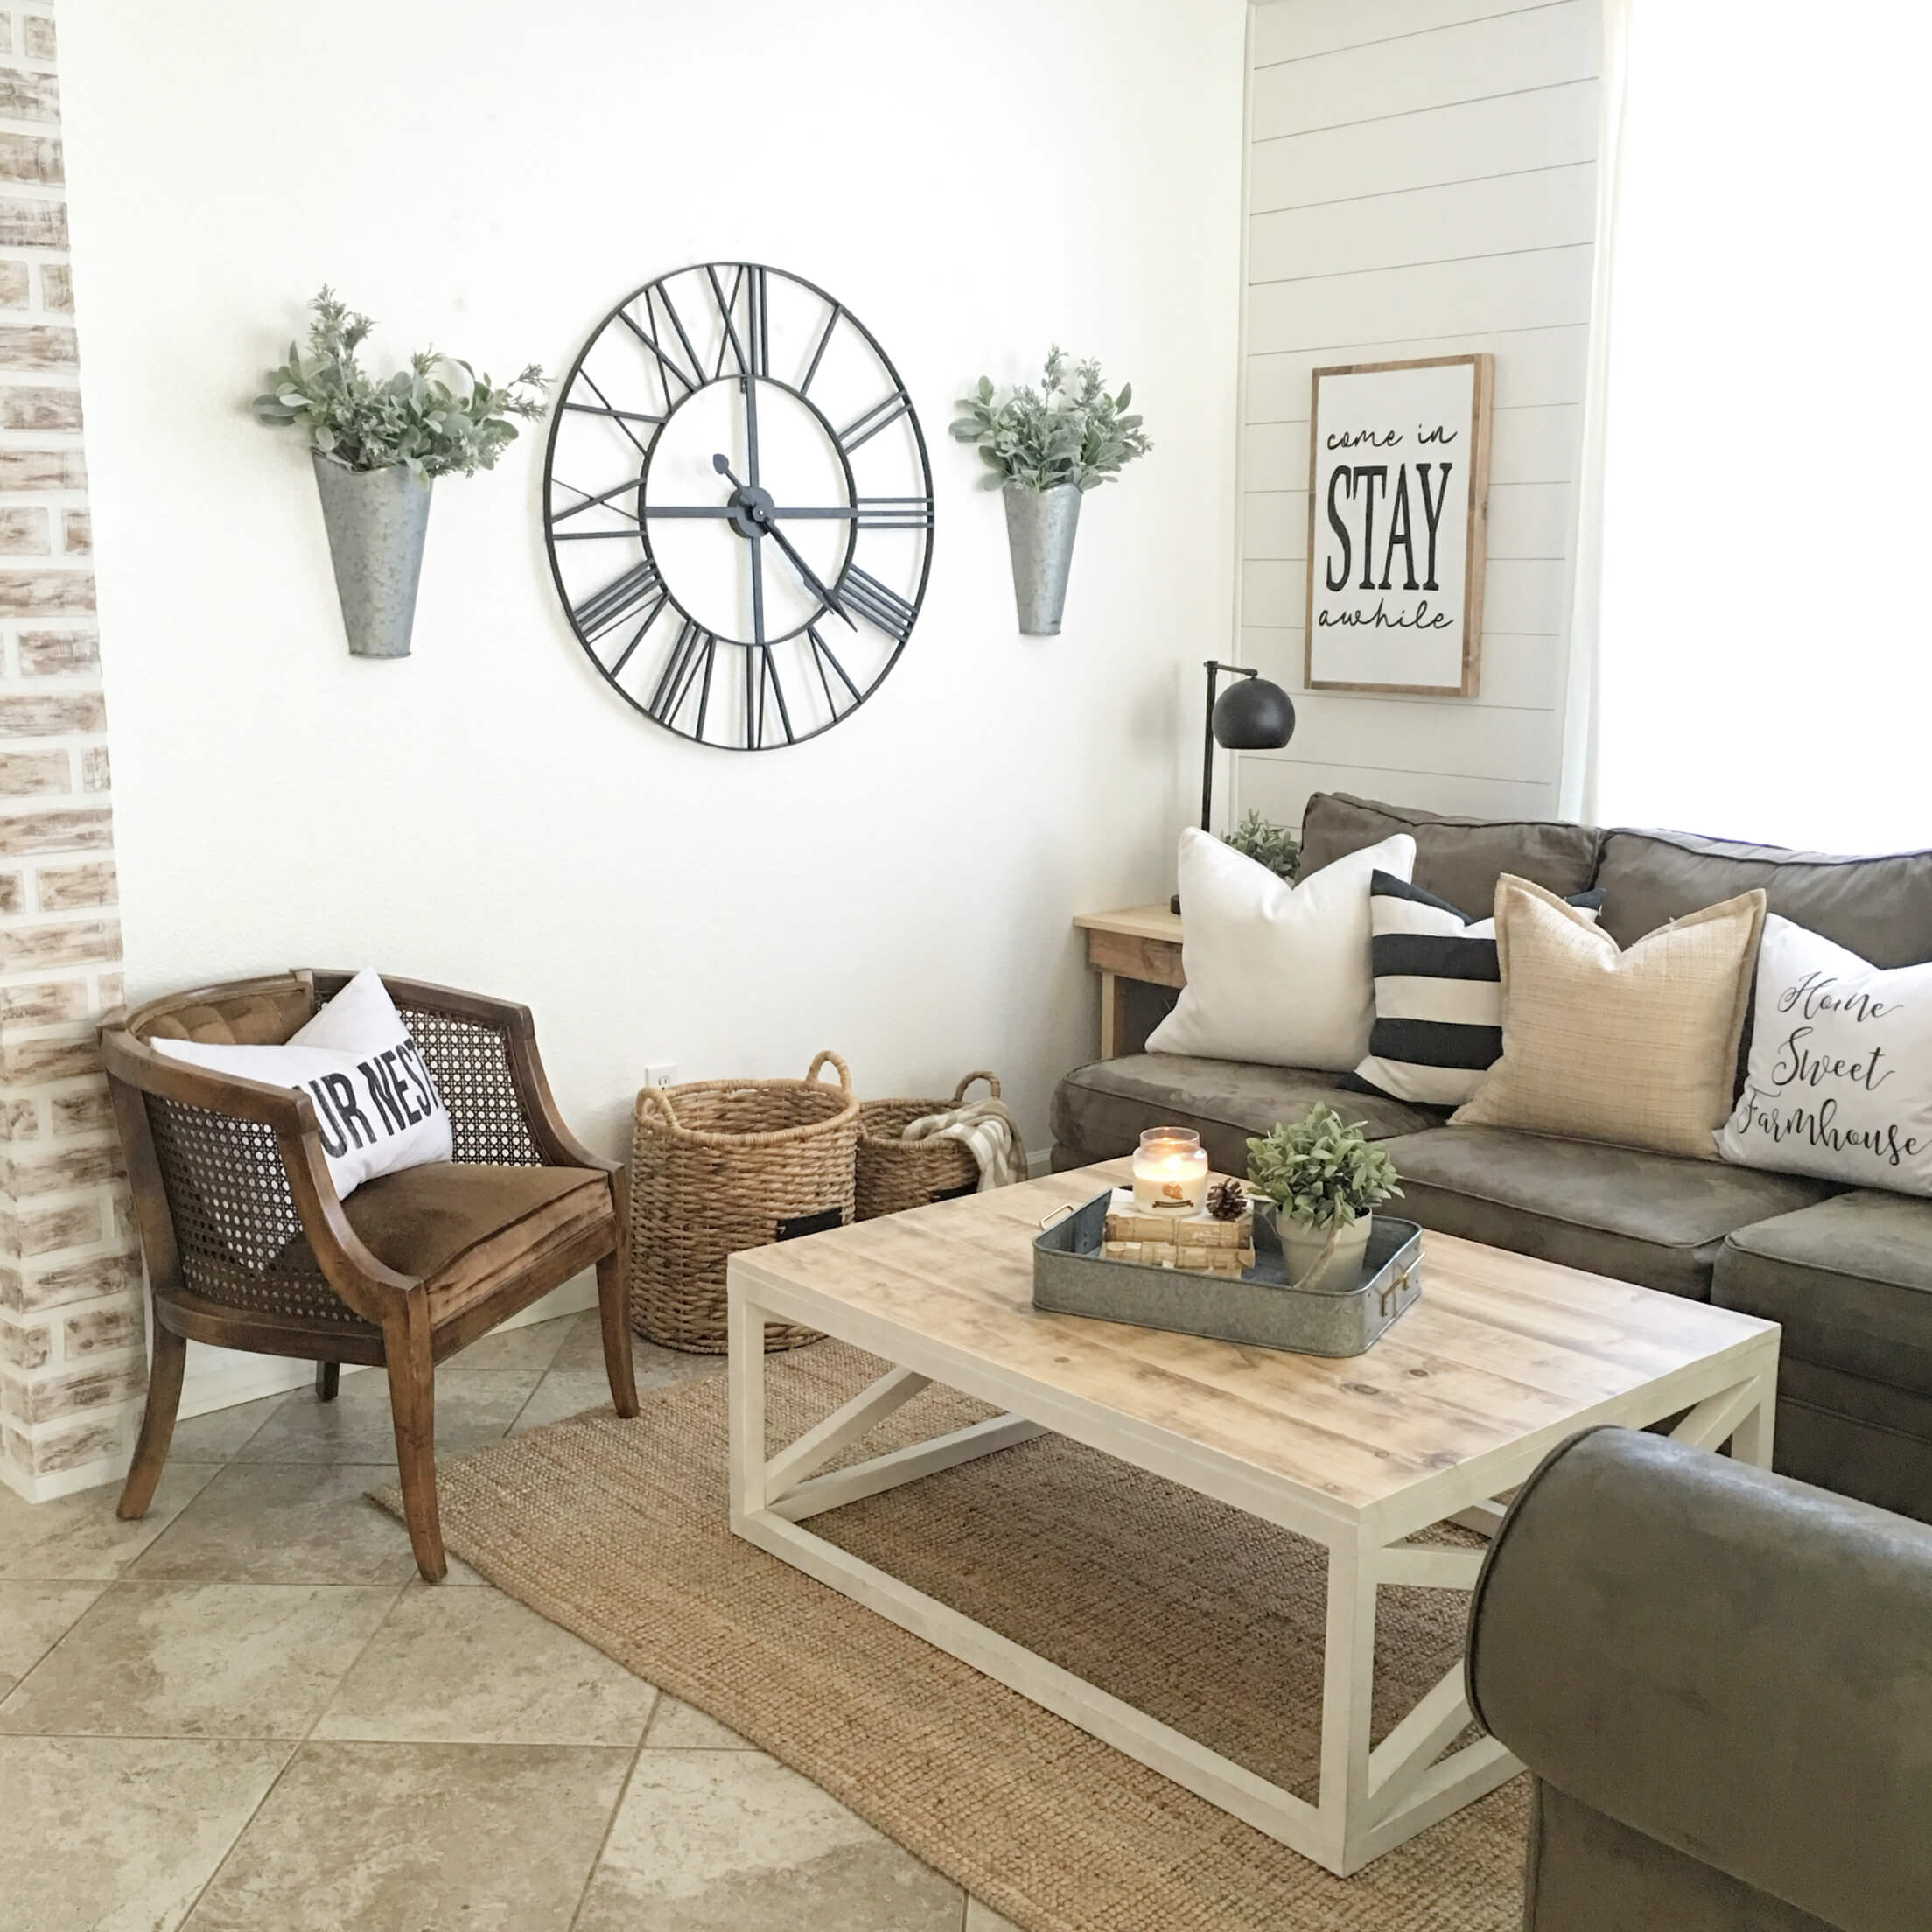 style for small living room contemporary pictures 25 best decor and design ideas 2019 farmhouse idea